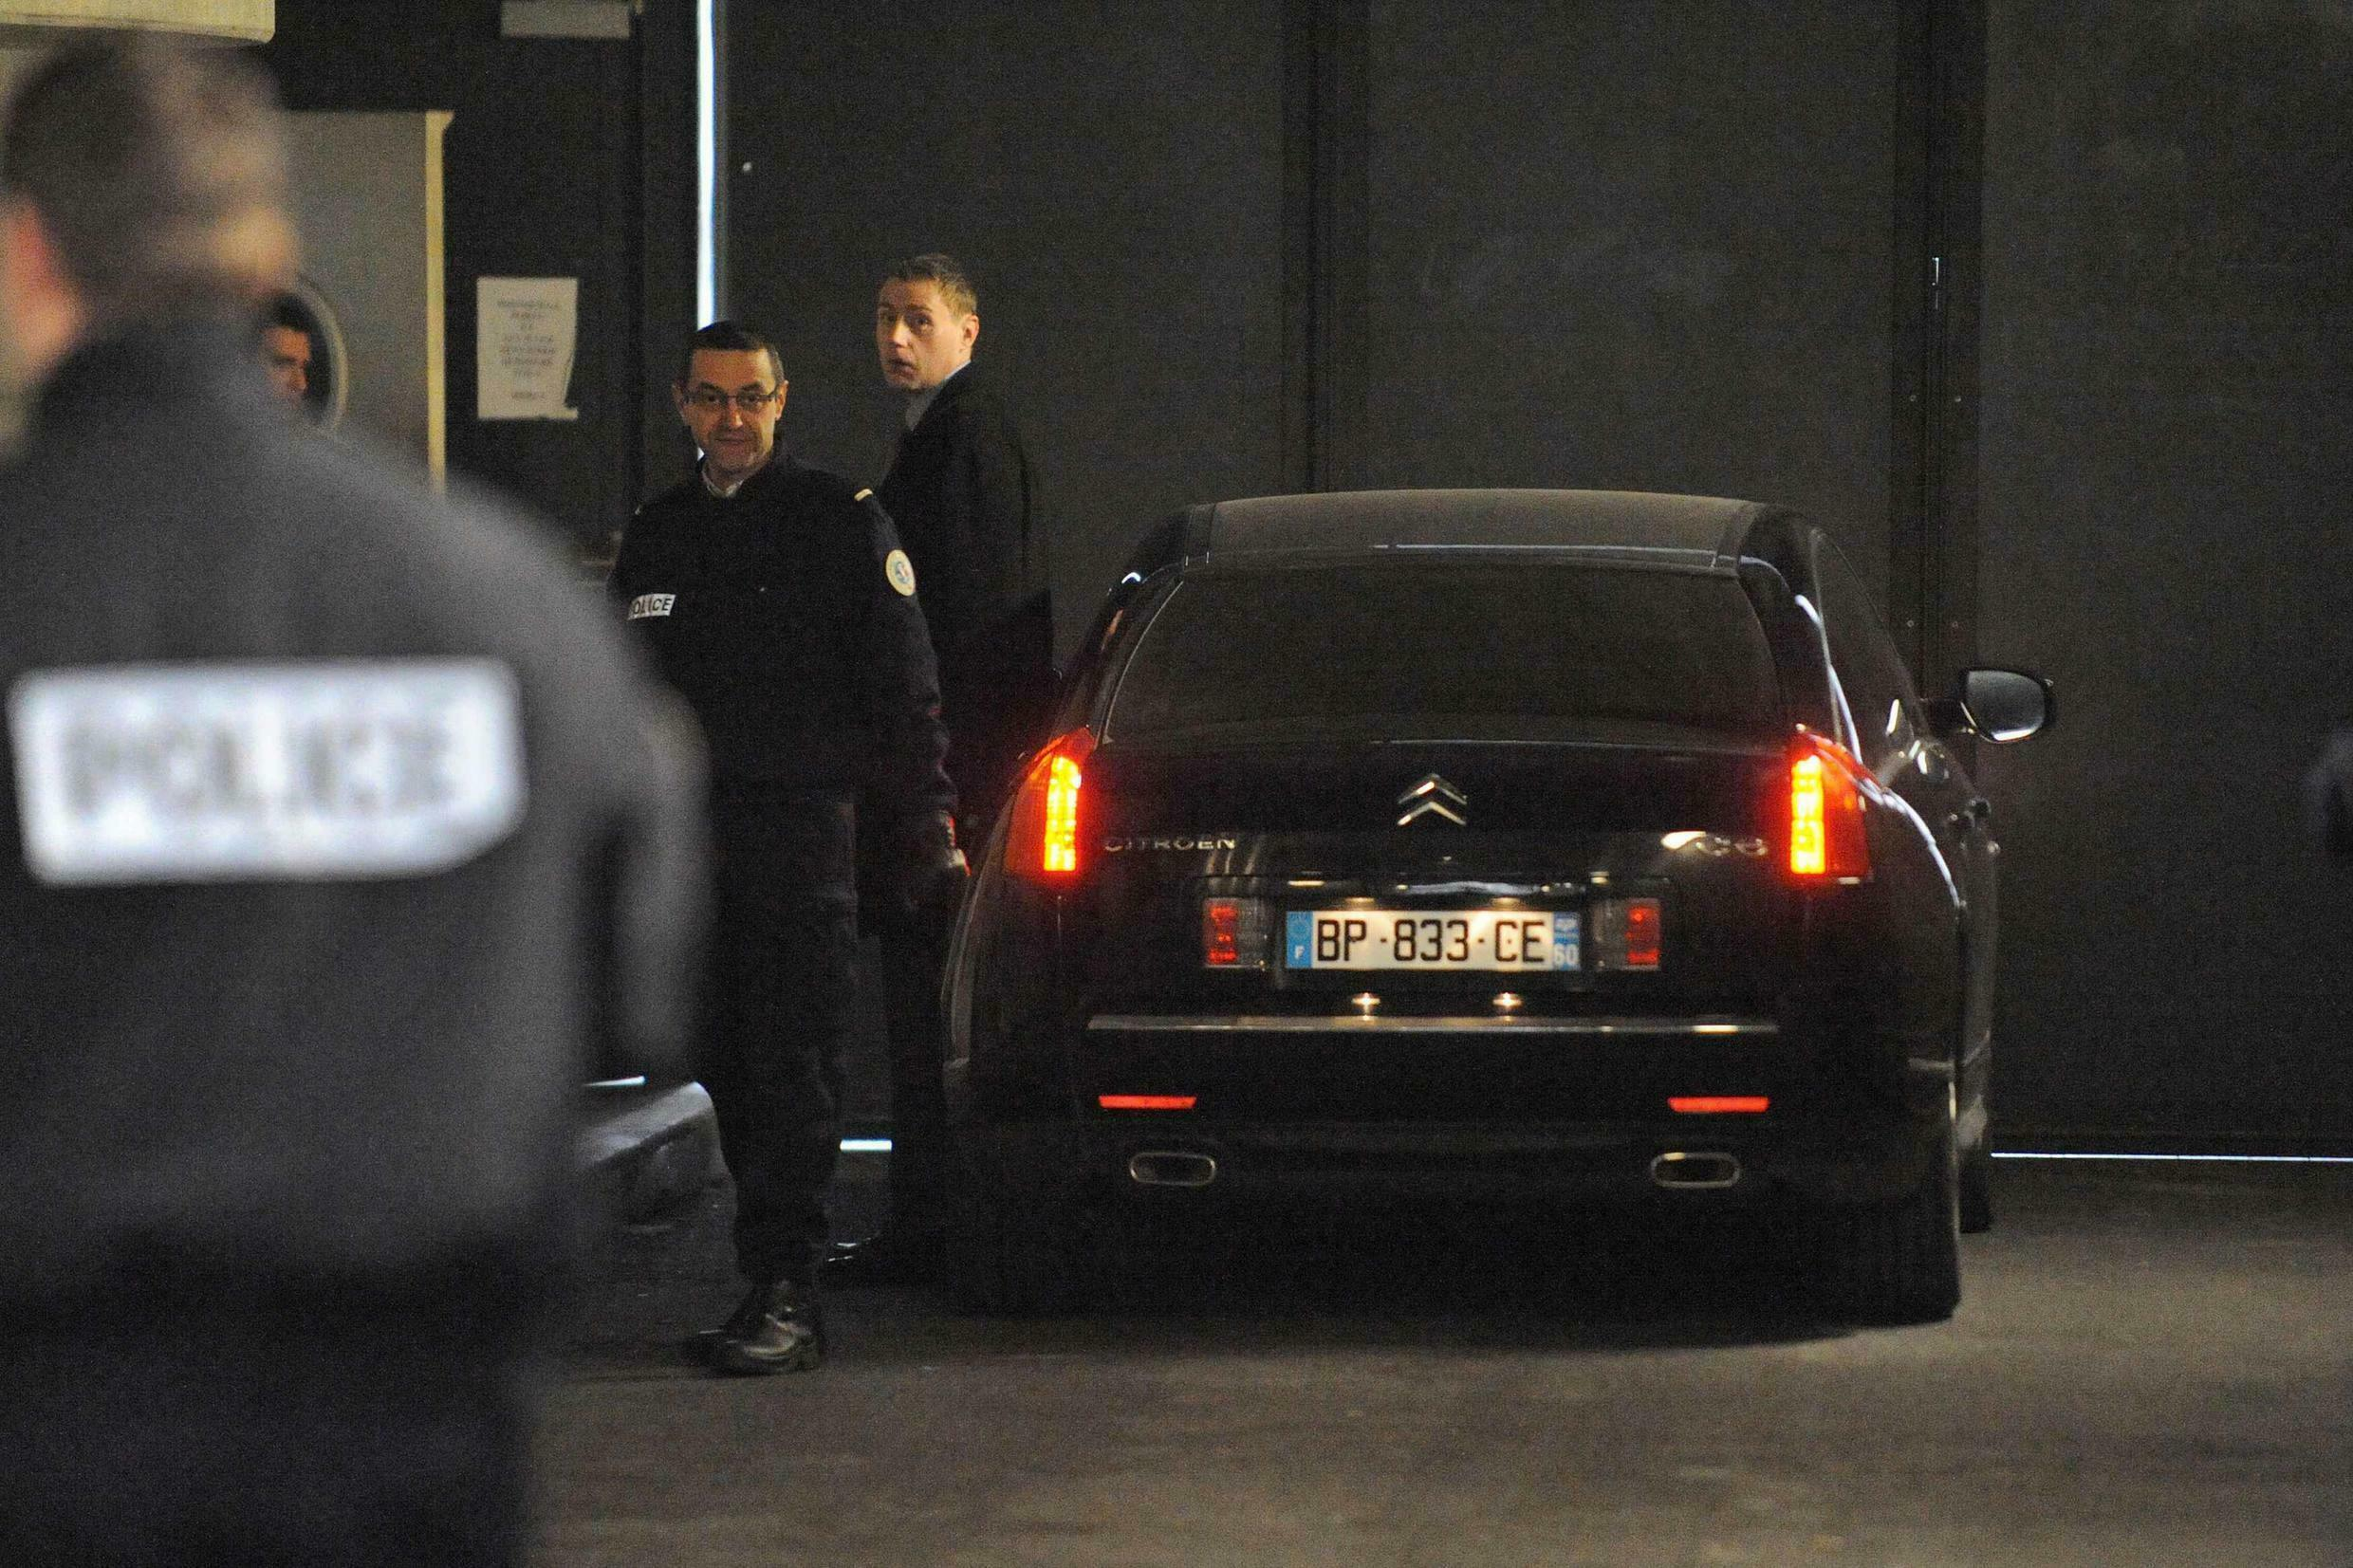 Ex Minister arrives at the tribunal in Bordeaux